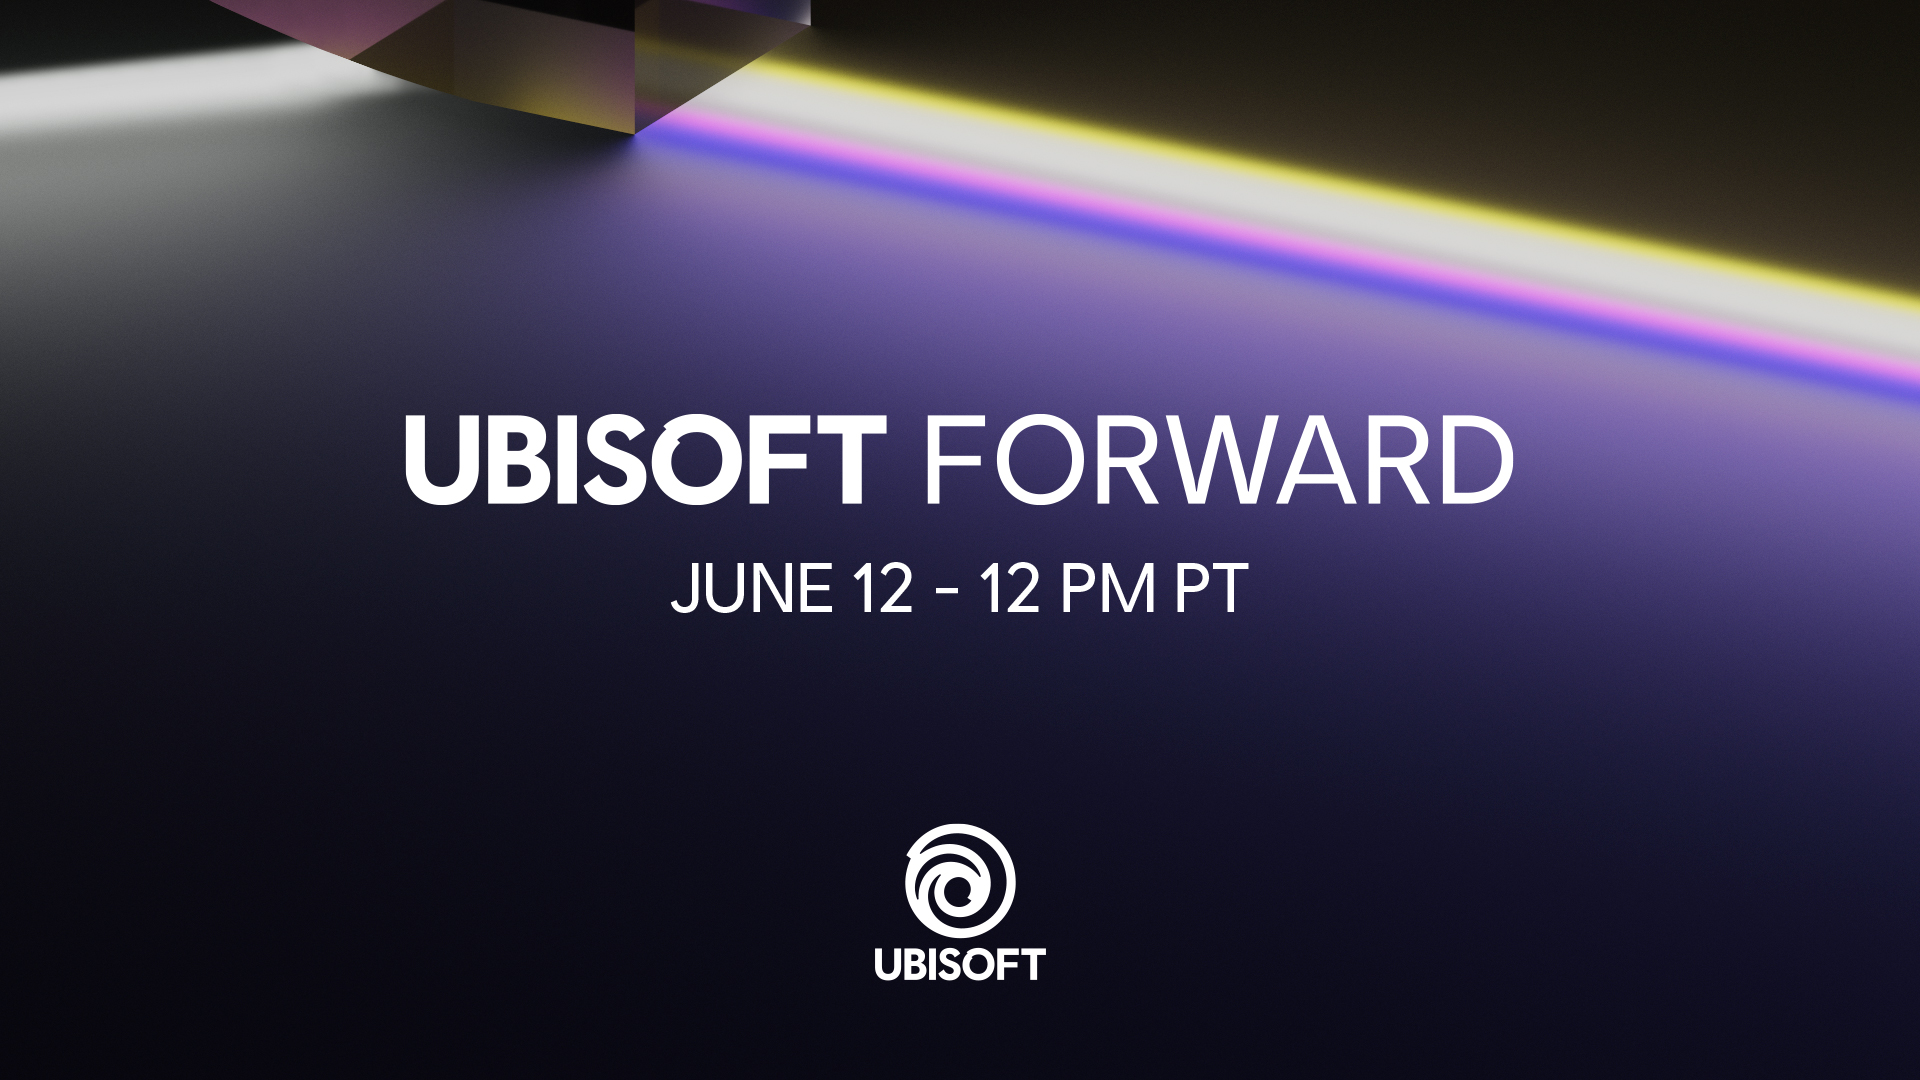 Ubisoft Forward for E3 2021 Announced